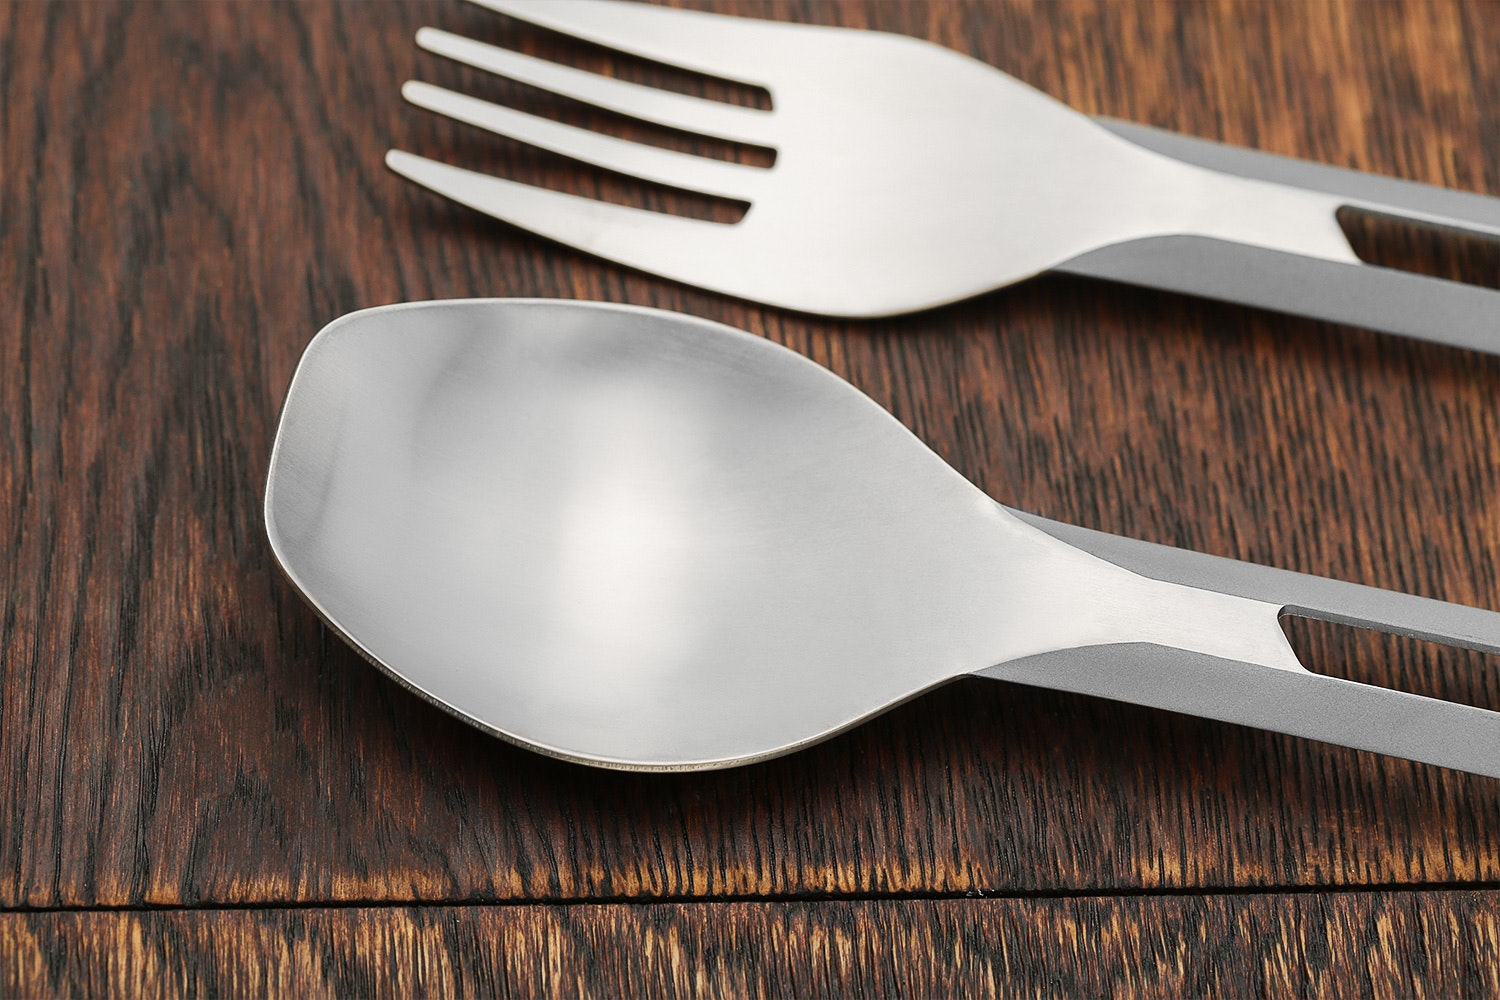 Esbit Titanium Cutlery Set (2-Pack)